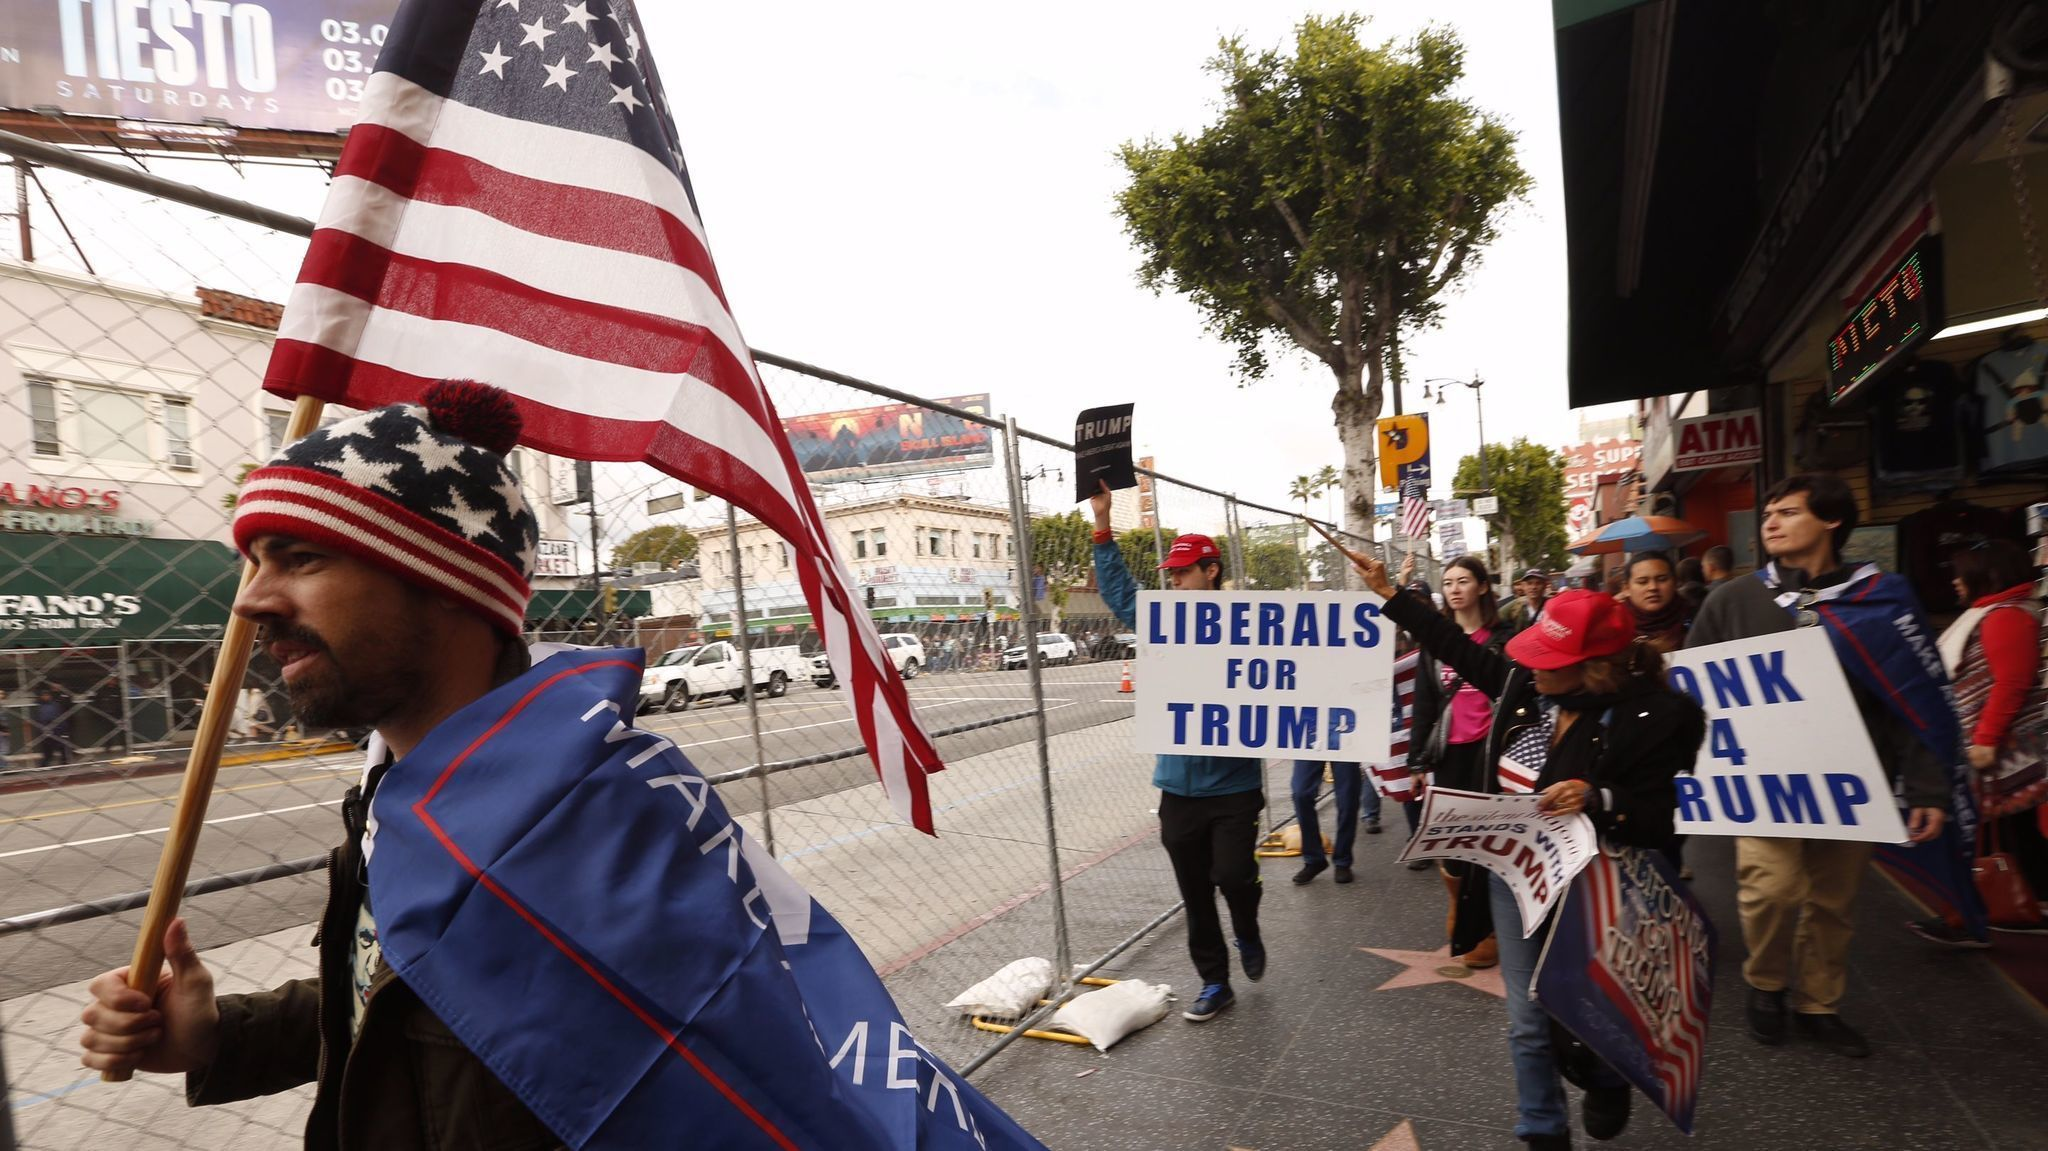 Trump supporters rally against 'Hollywood elites' ahead of ...